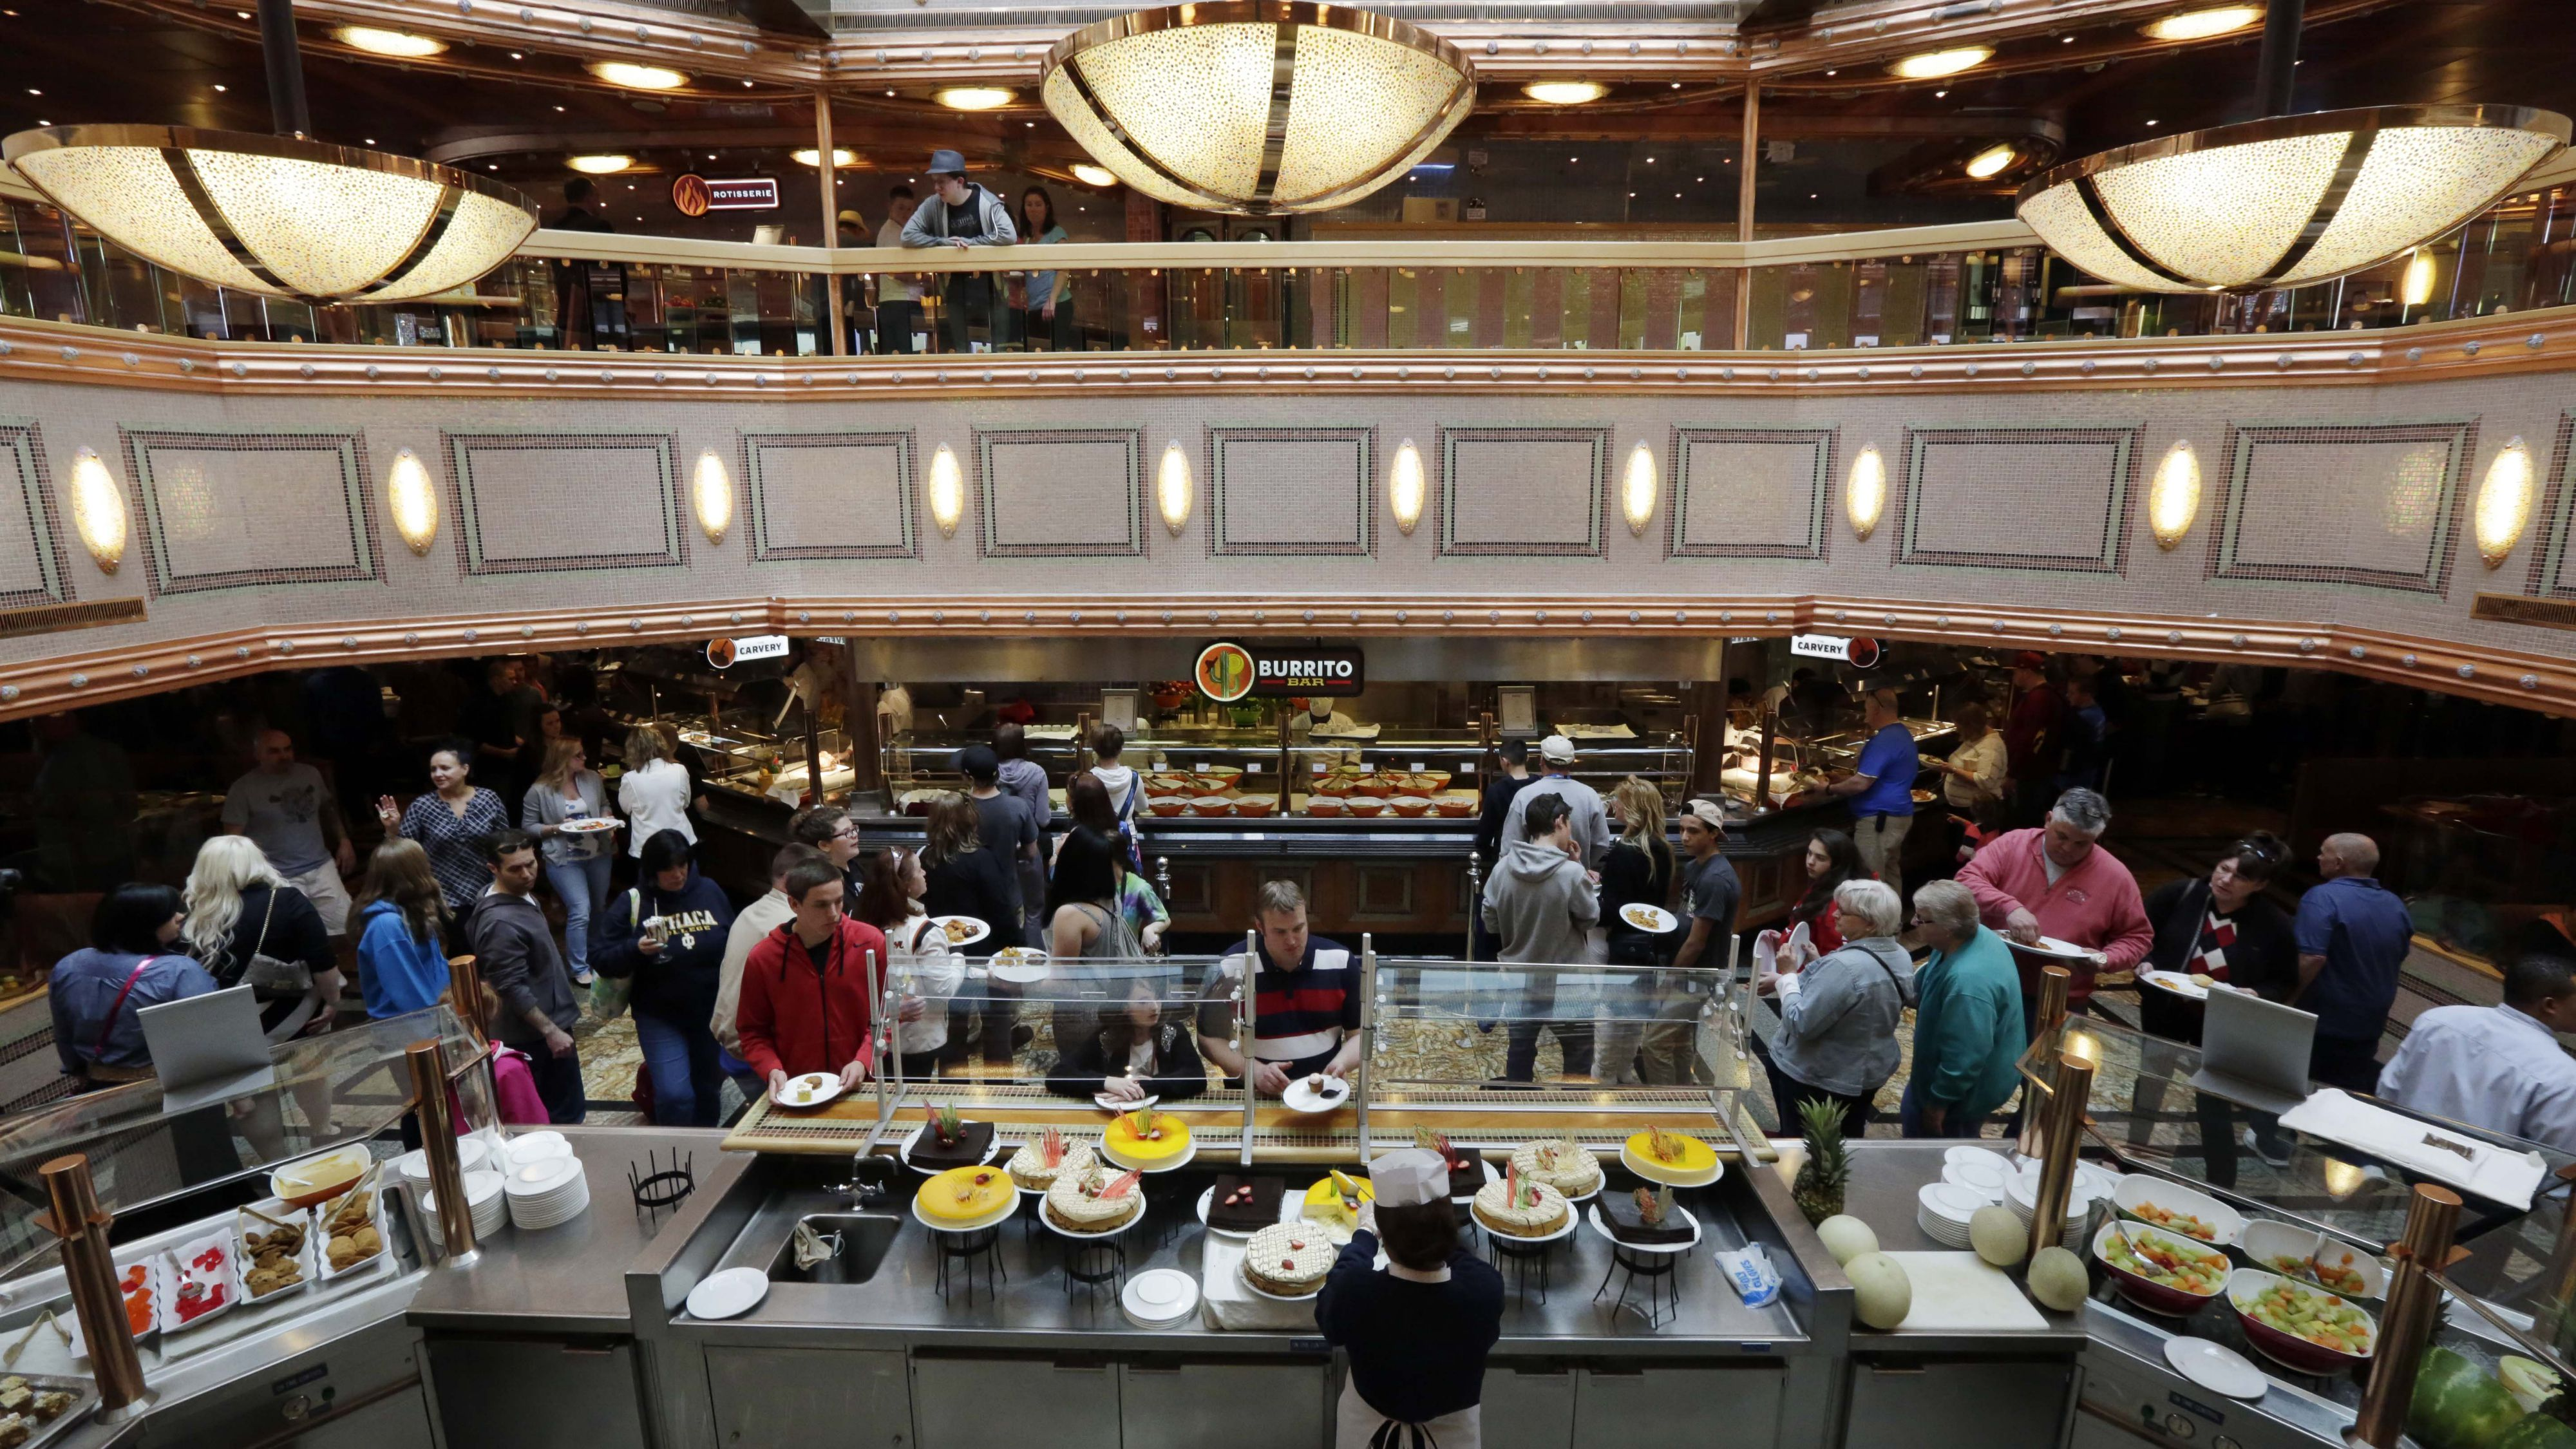 In this April 18, 2014 photo, passengers get lunch at the Burrito Bar, Carvery, and dessert bar of the Grand Buffet, aboard the Carnival Splendor cruise ship, in New York. Carnival Cruise CEO Arnold Donald is taking over a troubled, family-run business and trying to convert the world's largest cruise line into a profitable venture. (AP Photo/Richard Drew)